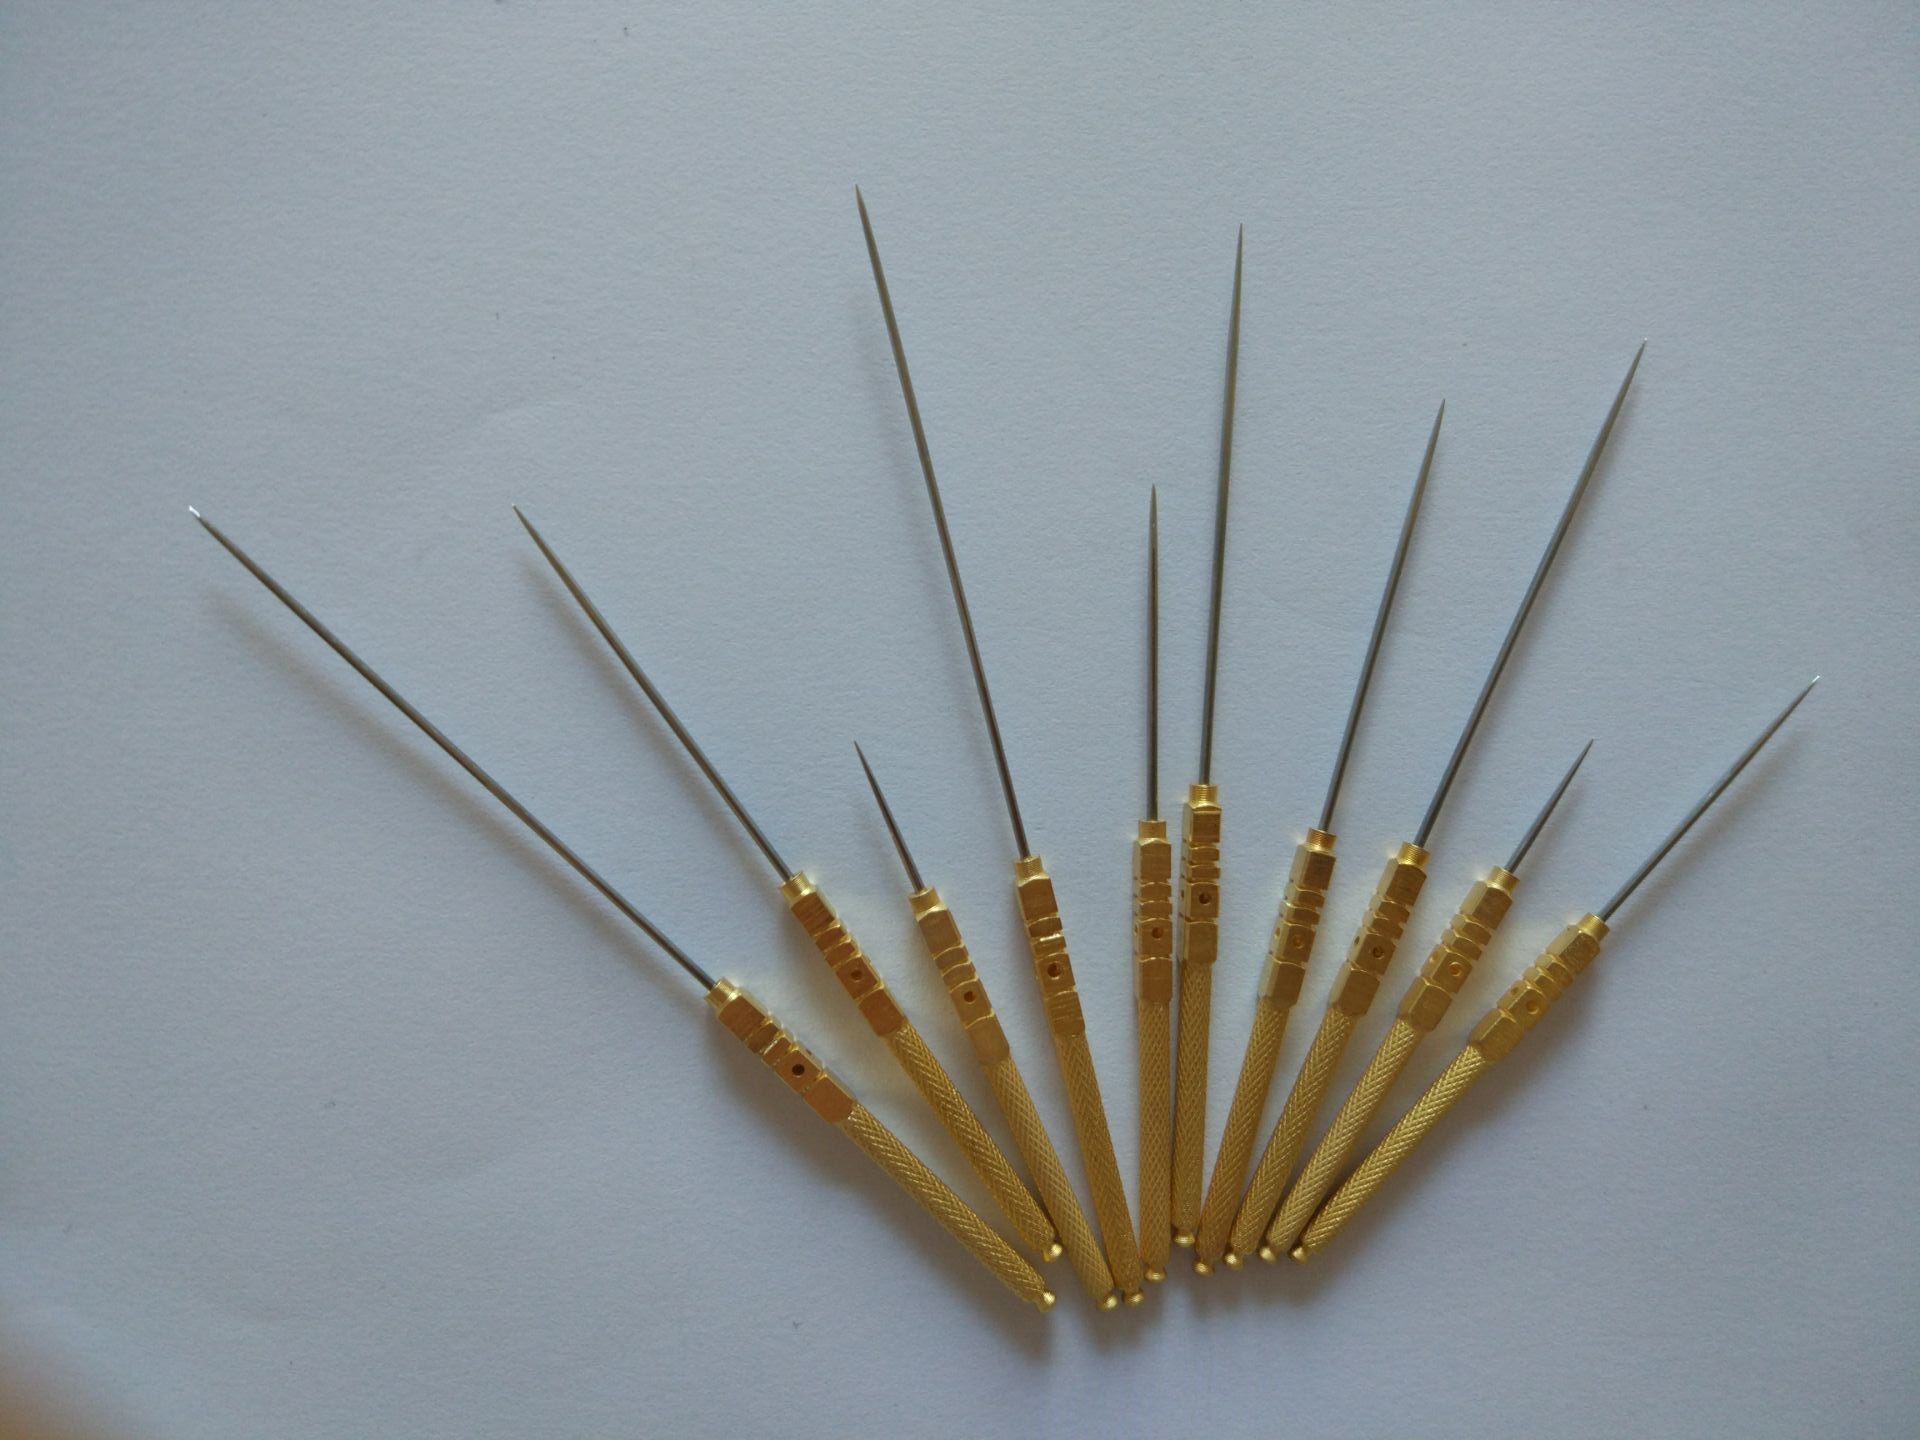 genuine four hole acupunctuer needle single point non ...